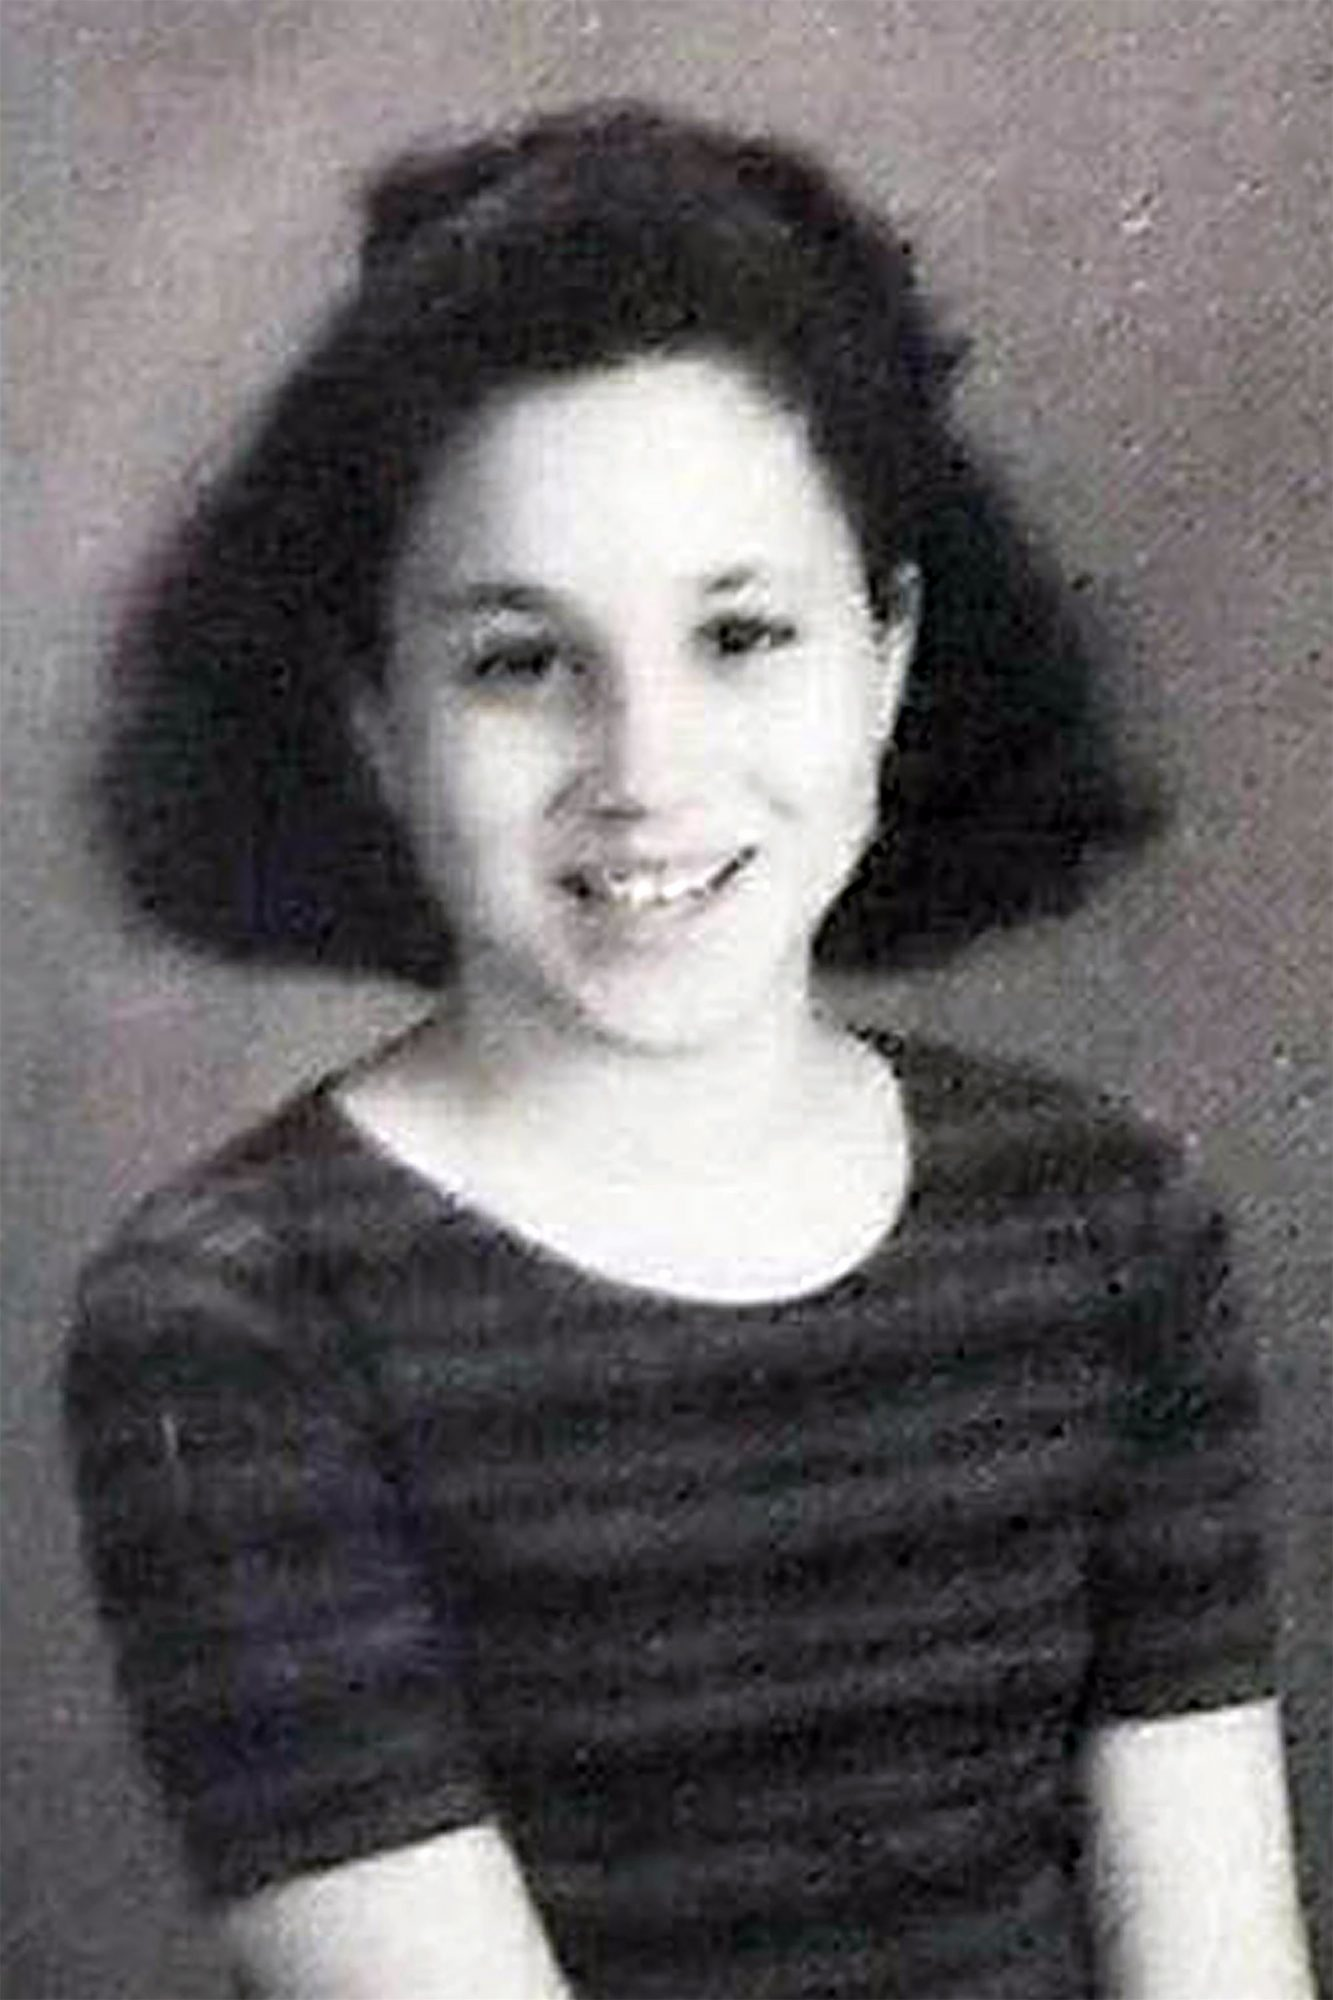 *EXCLUSIVE* Sparkle Markle A.K.A. Meghan Markle is seen in rare graduation photos from elementary school